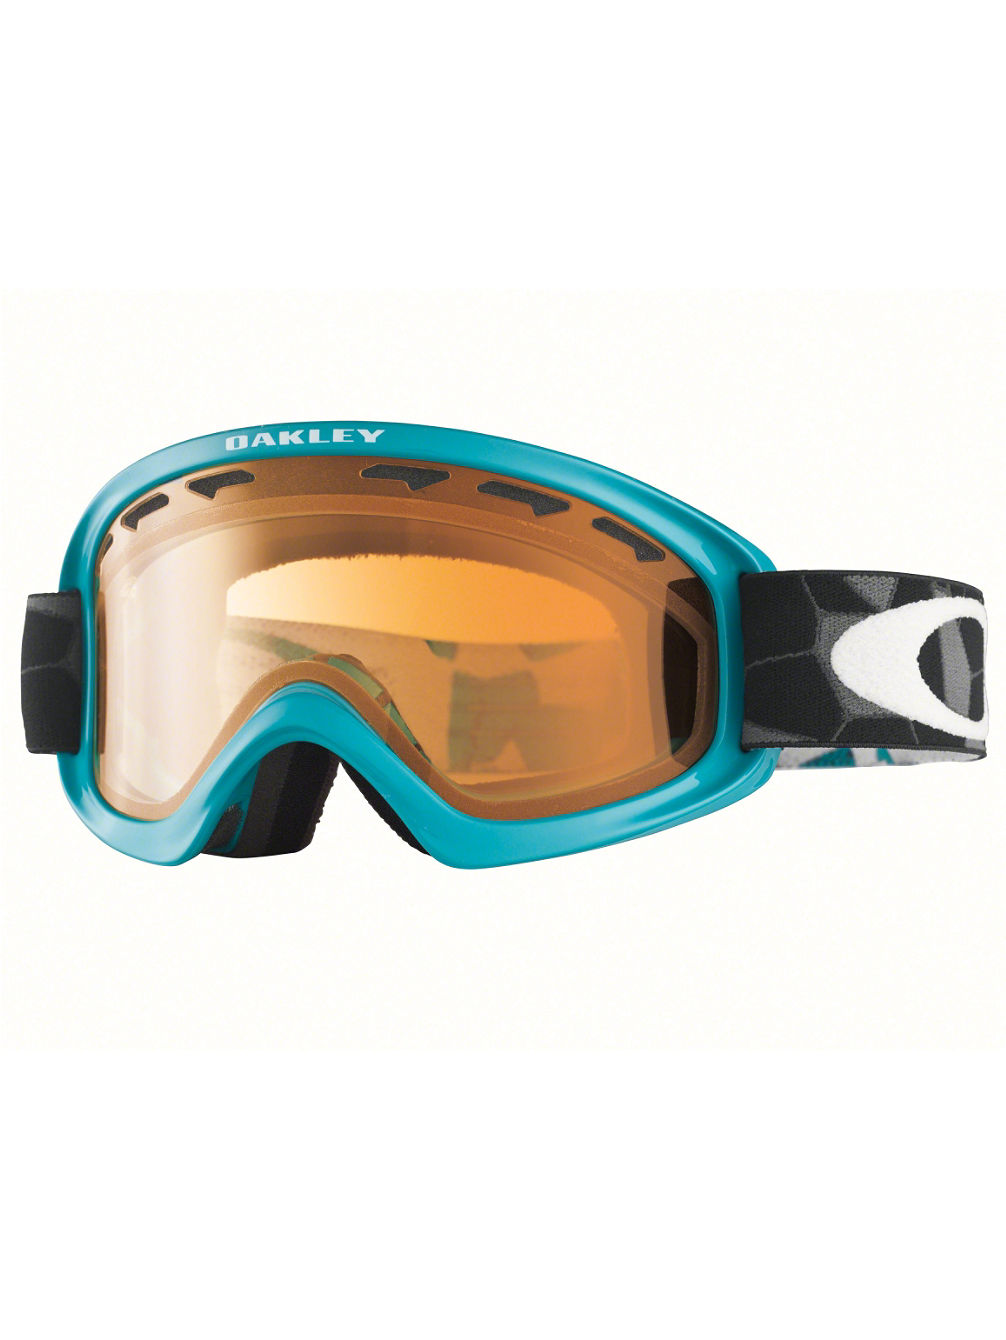 how to buy snowboard goggles